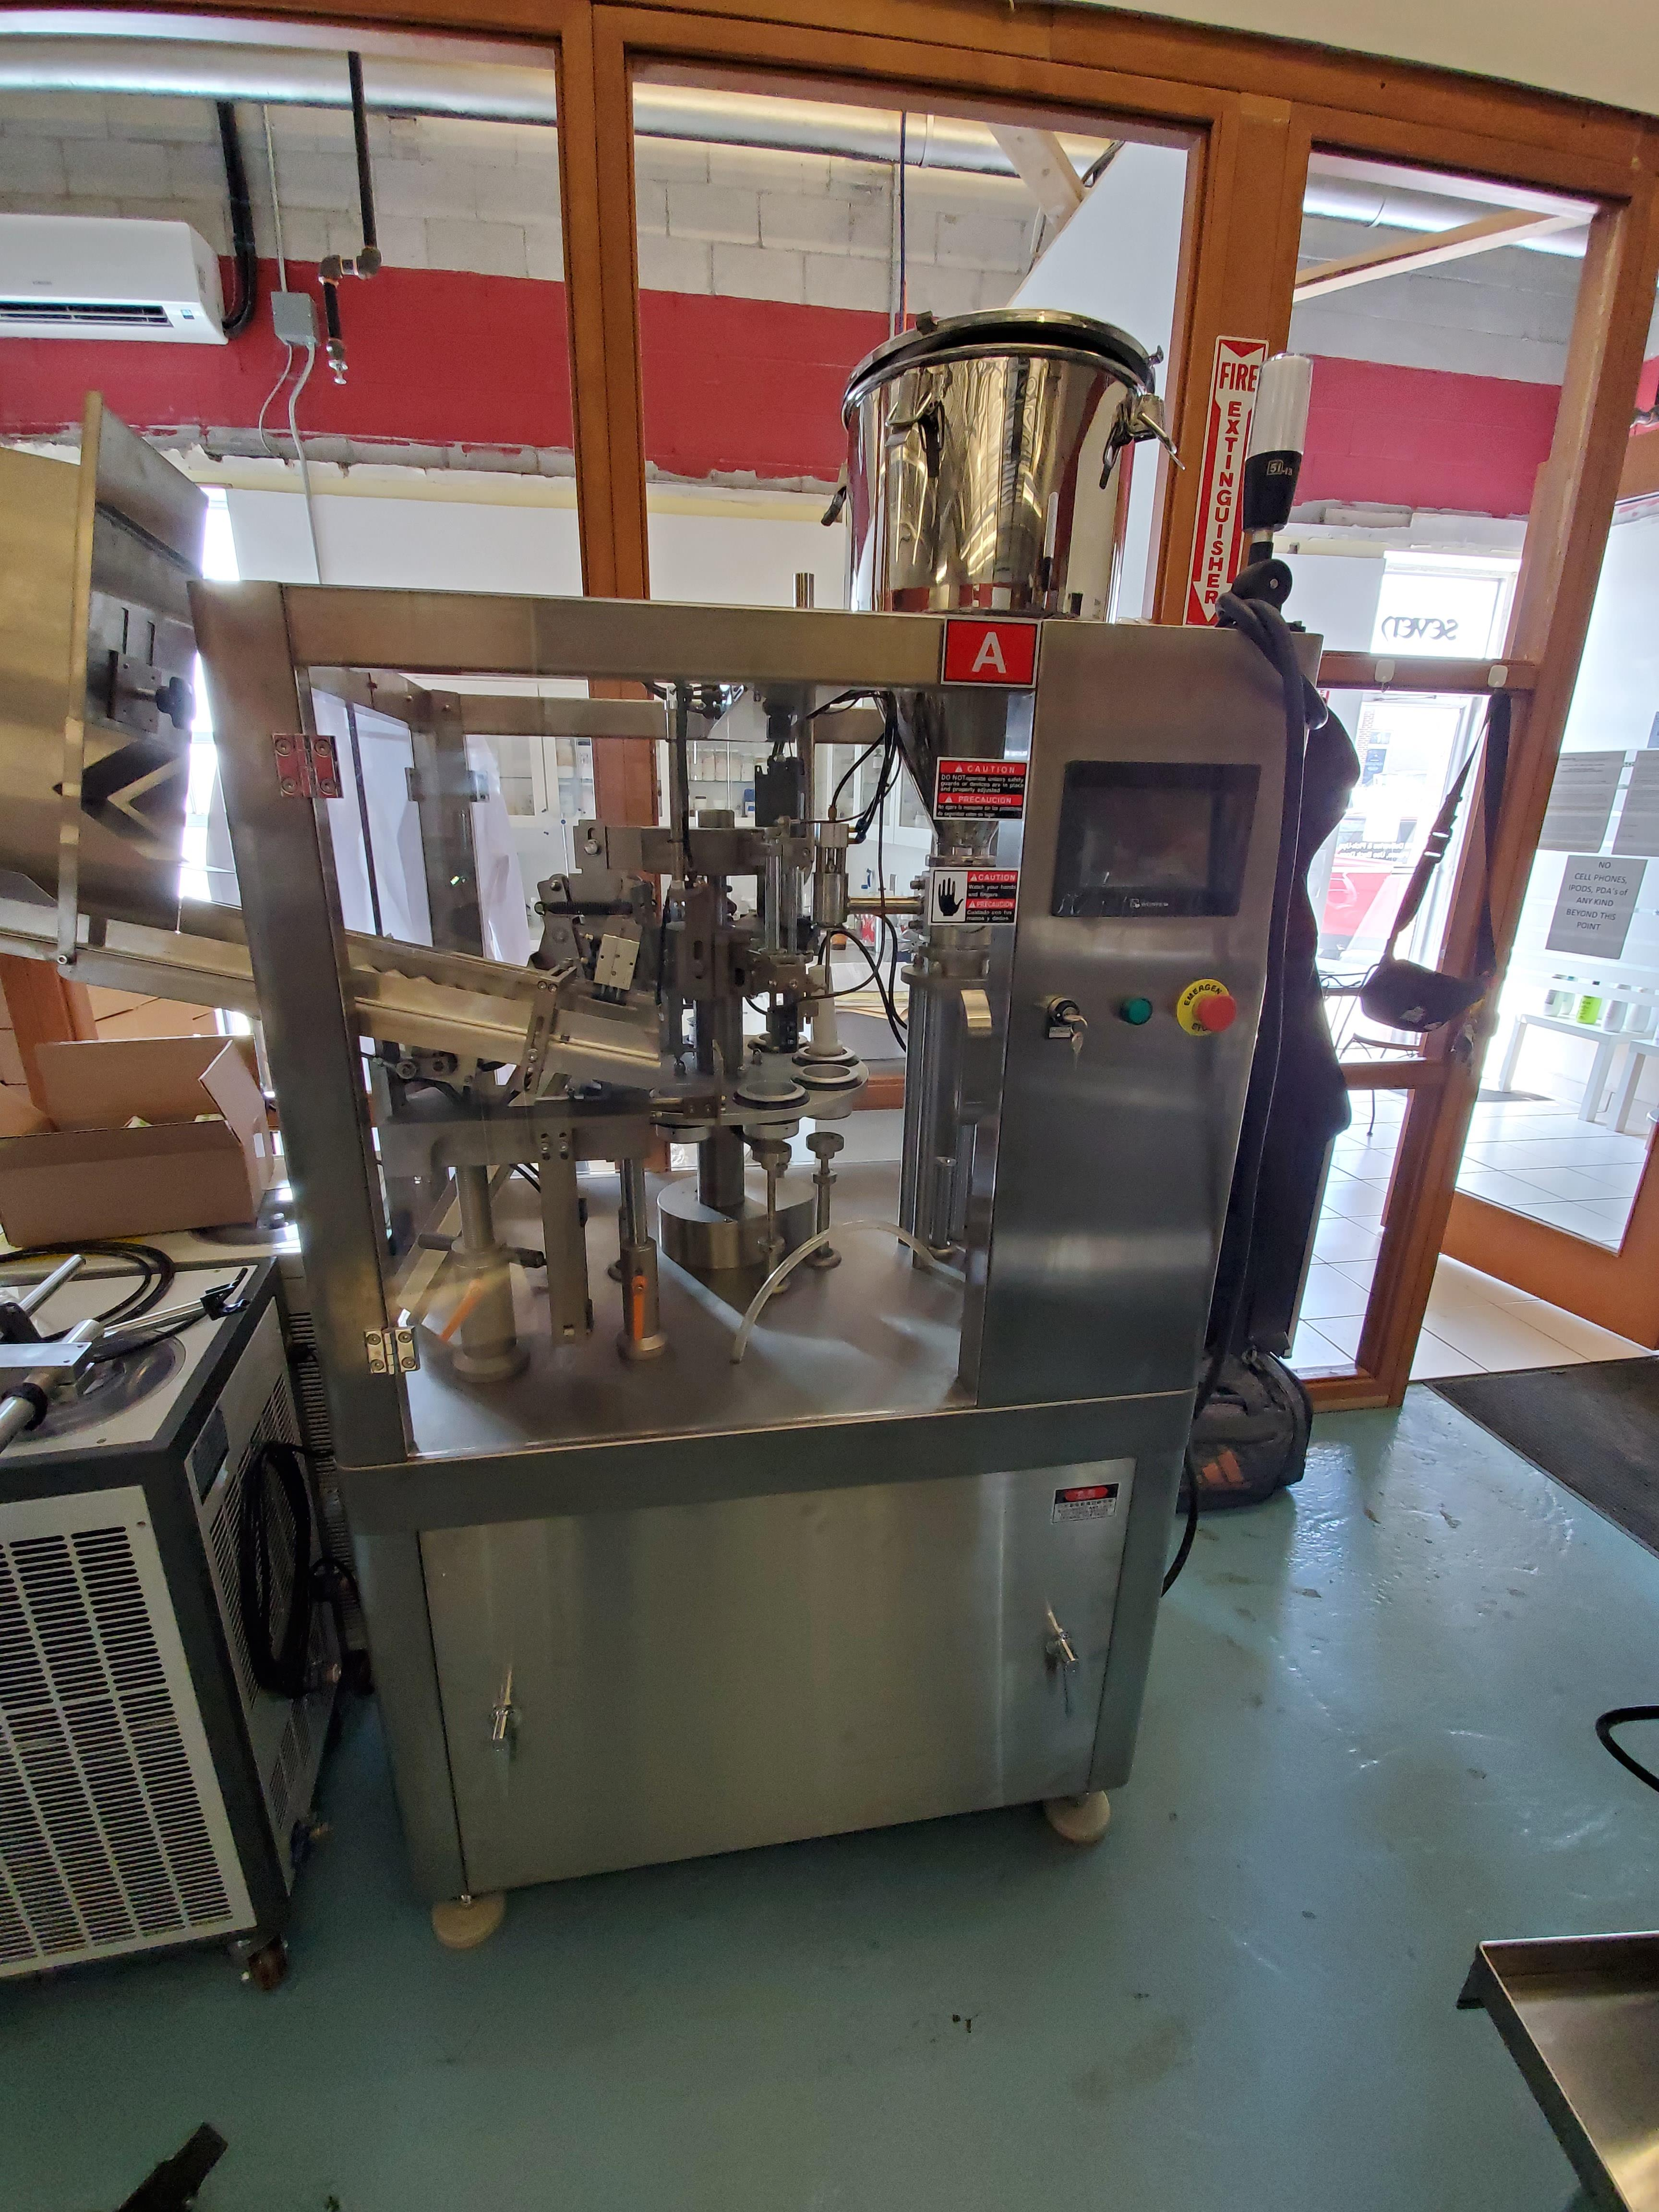 Chasing 8 Station Automatic Plastic Tube Filler w/ Hot Air Seal